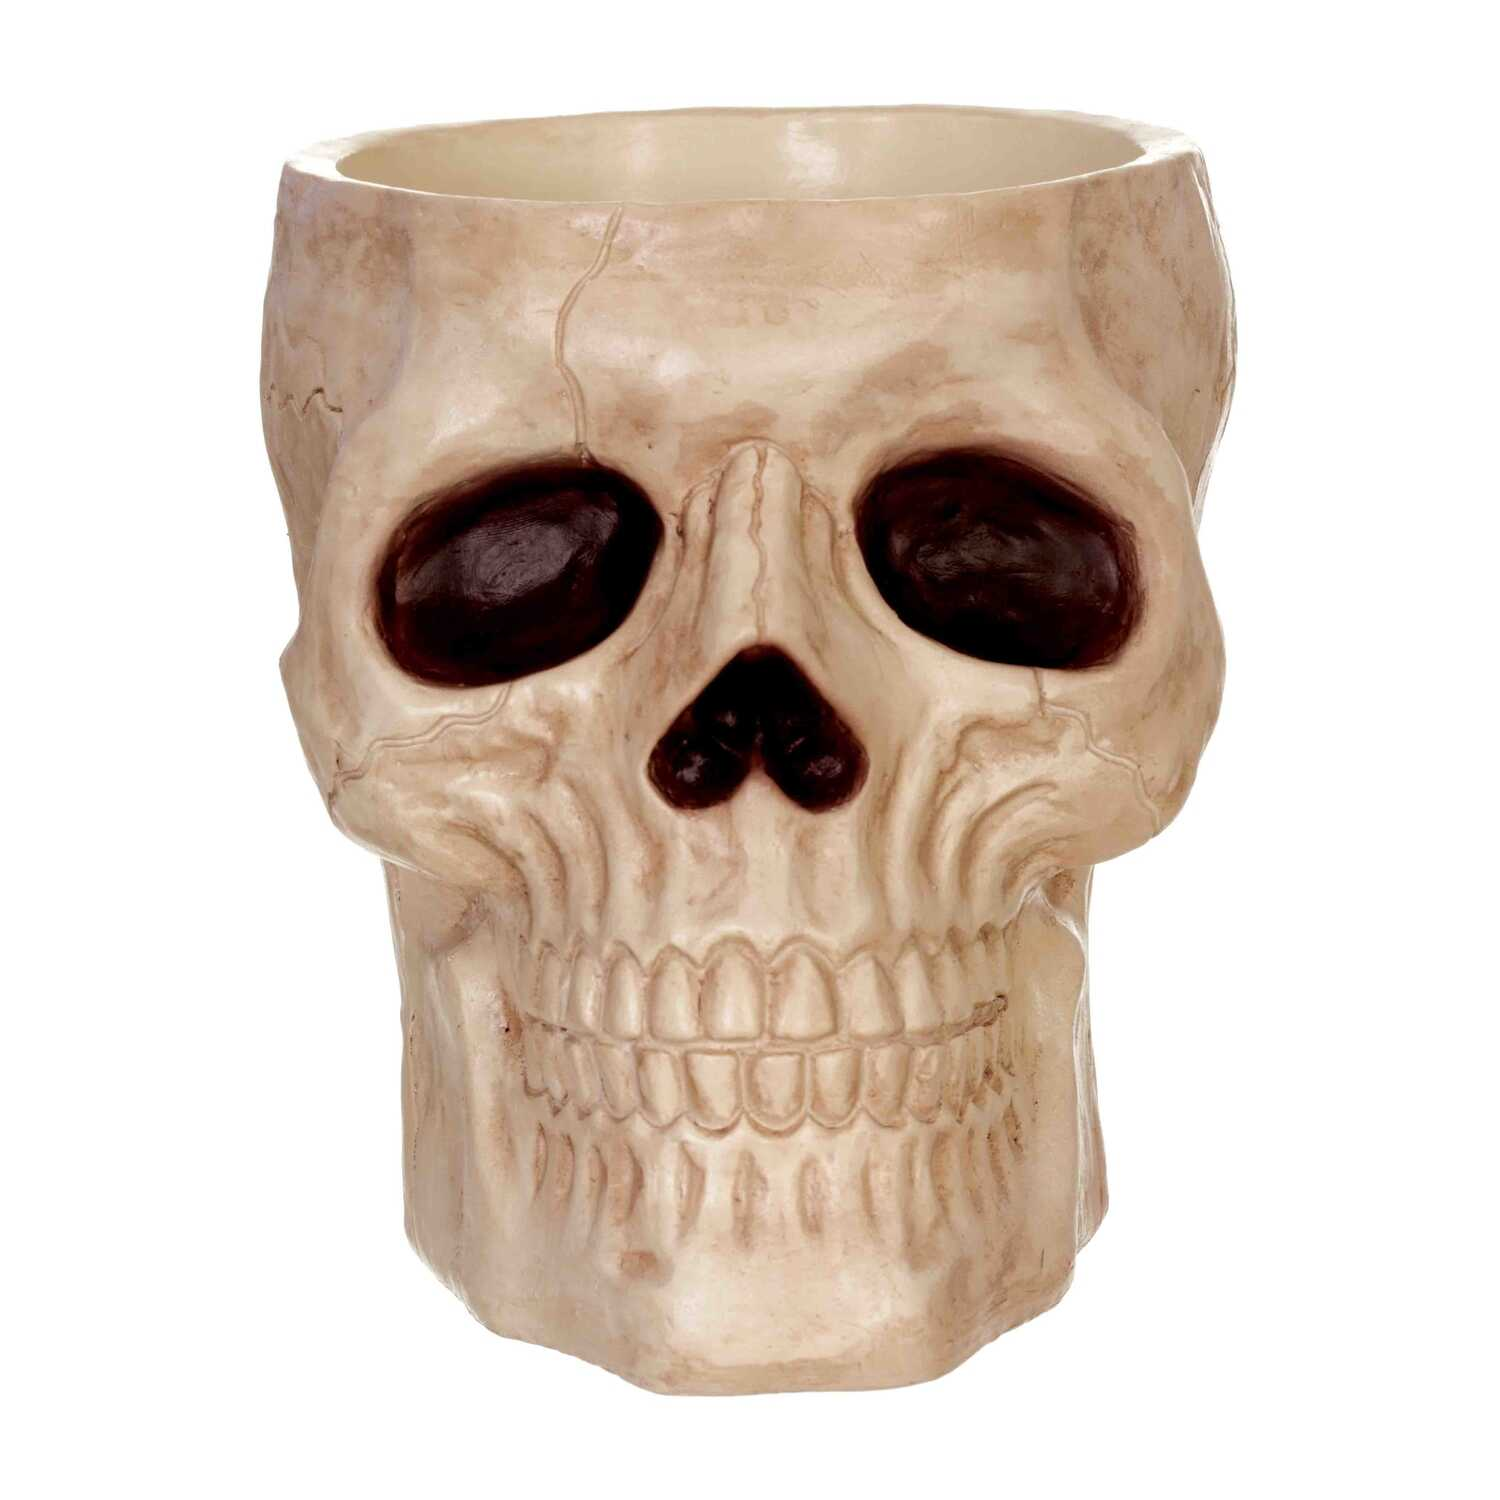 Seasons  Skull Candy Bowl  Halloween Decoration  8-1/2 in. H x 7-9/16 in. W x 9-1/2 in. L 1 each